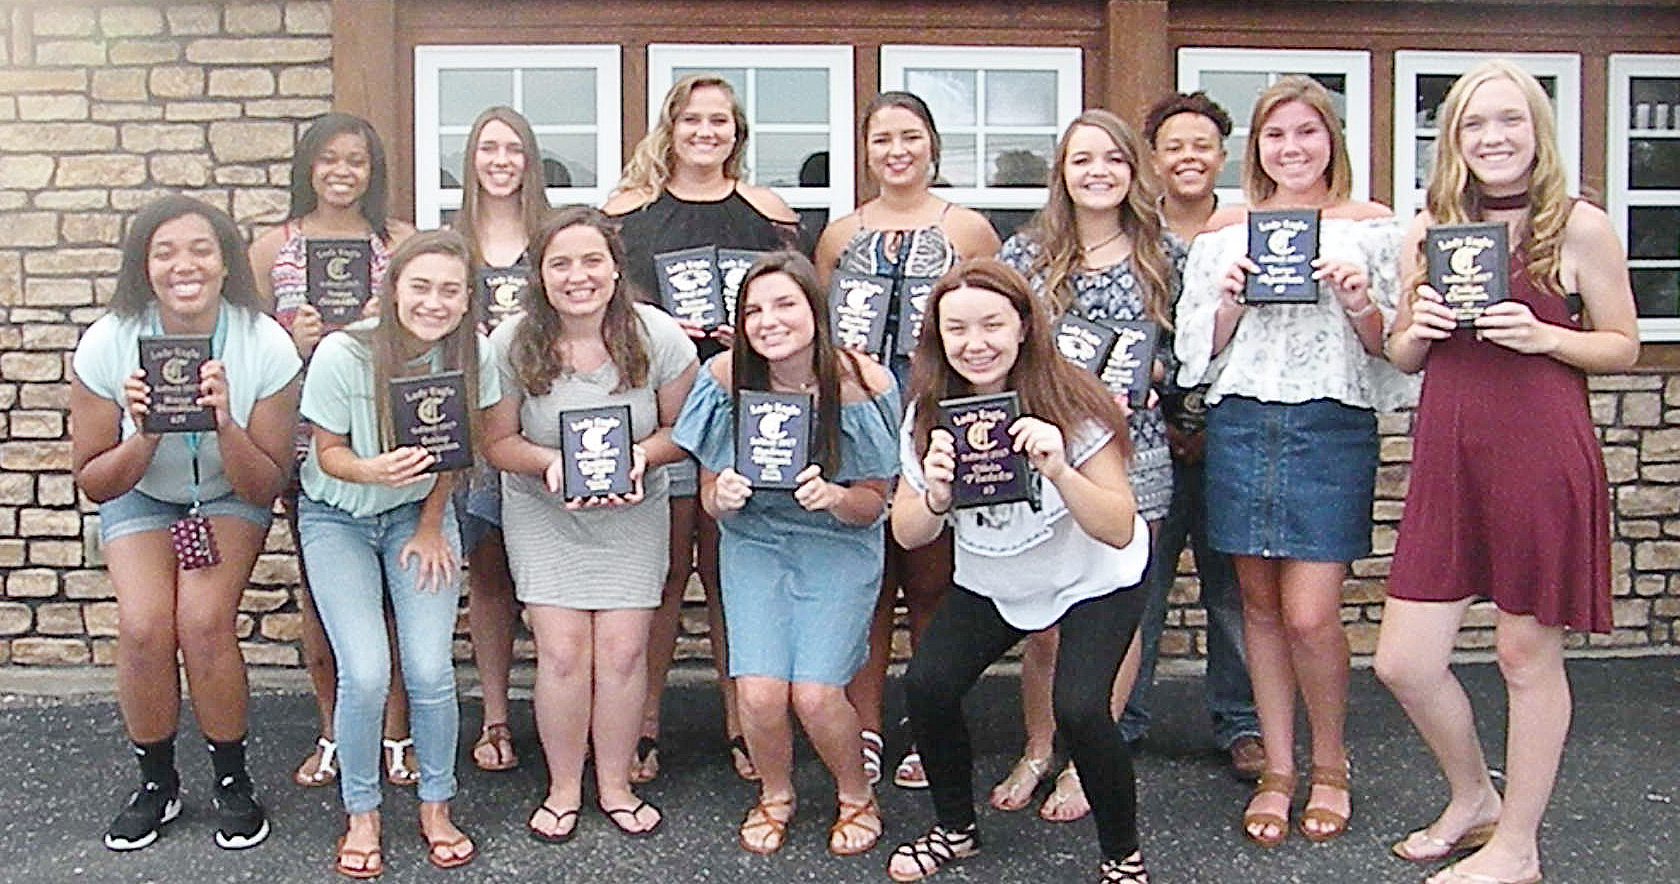 CHS softball players were recently honored at a banquet for their hard work and dedication during this past season. They are, from left, front, senior Malaya Hoskins, sophomore Bailey Thompson, senior Caitlin Bright, sophomore Sydney Wilson and eighth-grader Olivia Fields. Back, senior Vonnea Smith, freshman Abi Wiedewitsch, Brenna Wethington and Kailey Morris, who graduated in May, freshman Kenzi Forbis, junior Dee Simpson, sophomore Lauryn Agathen and freshman Catlyn Clausen. Absent from the photo are sophomore Shallan Philpott and seniors Kayla Young, Kiyah Barnett and Nena Barnett.